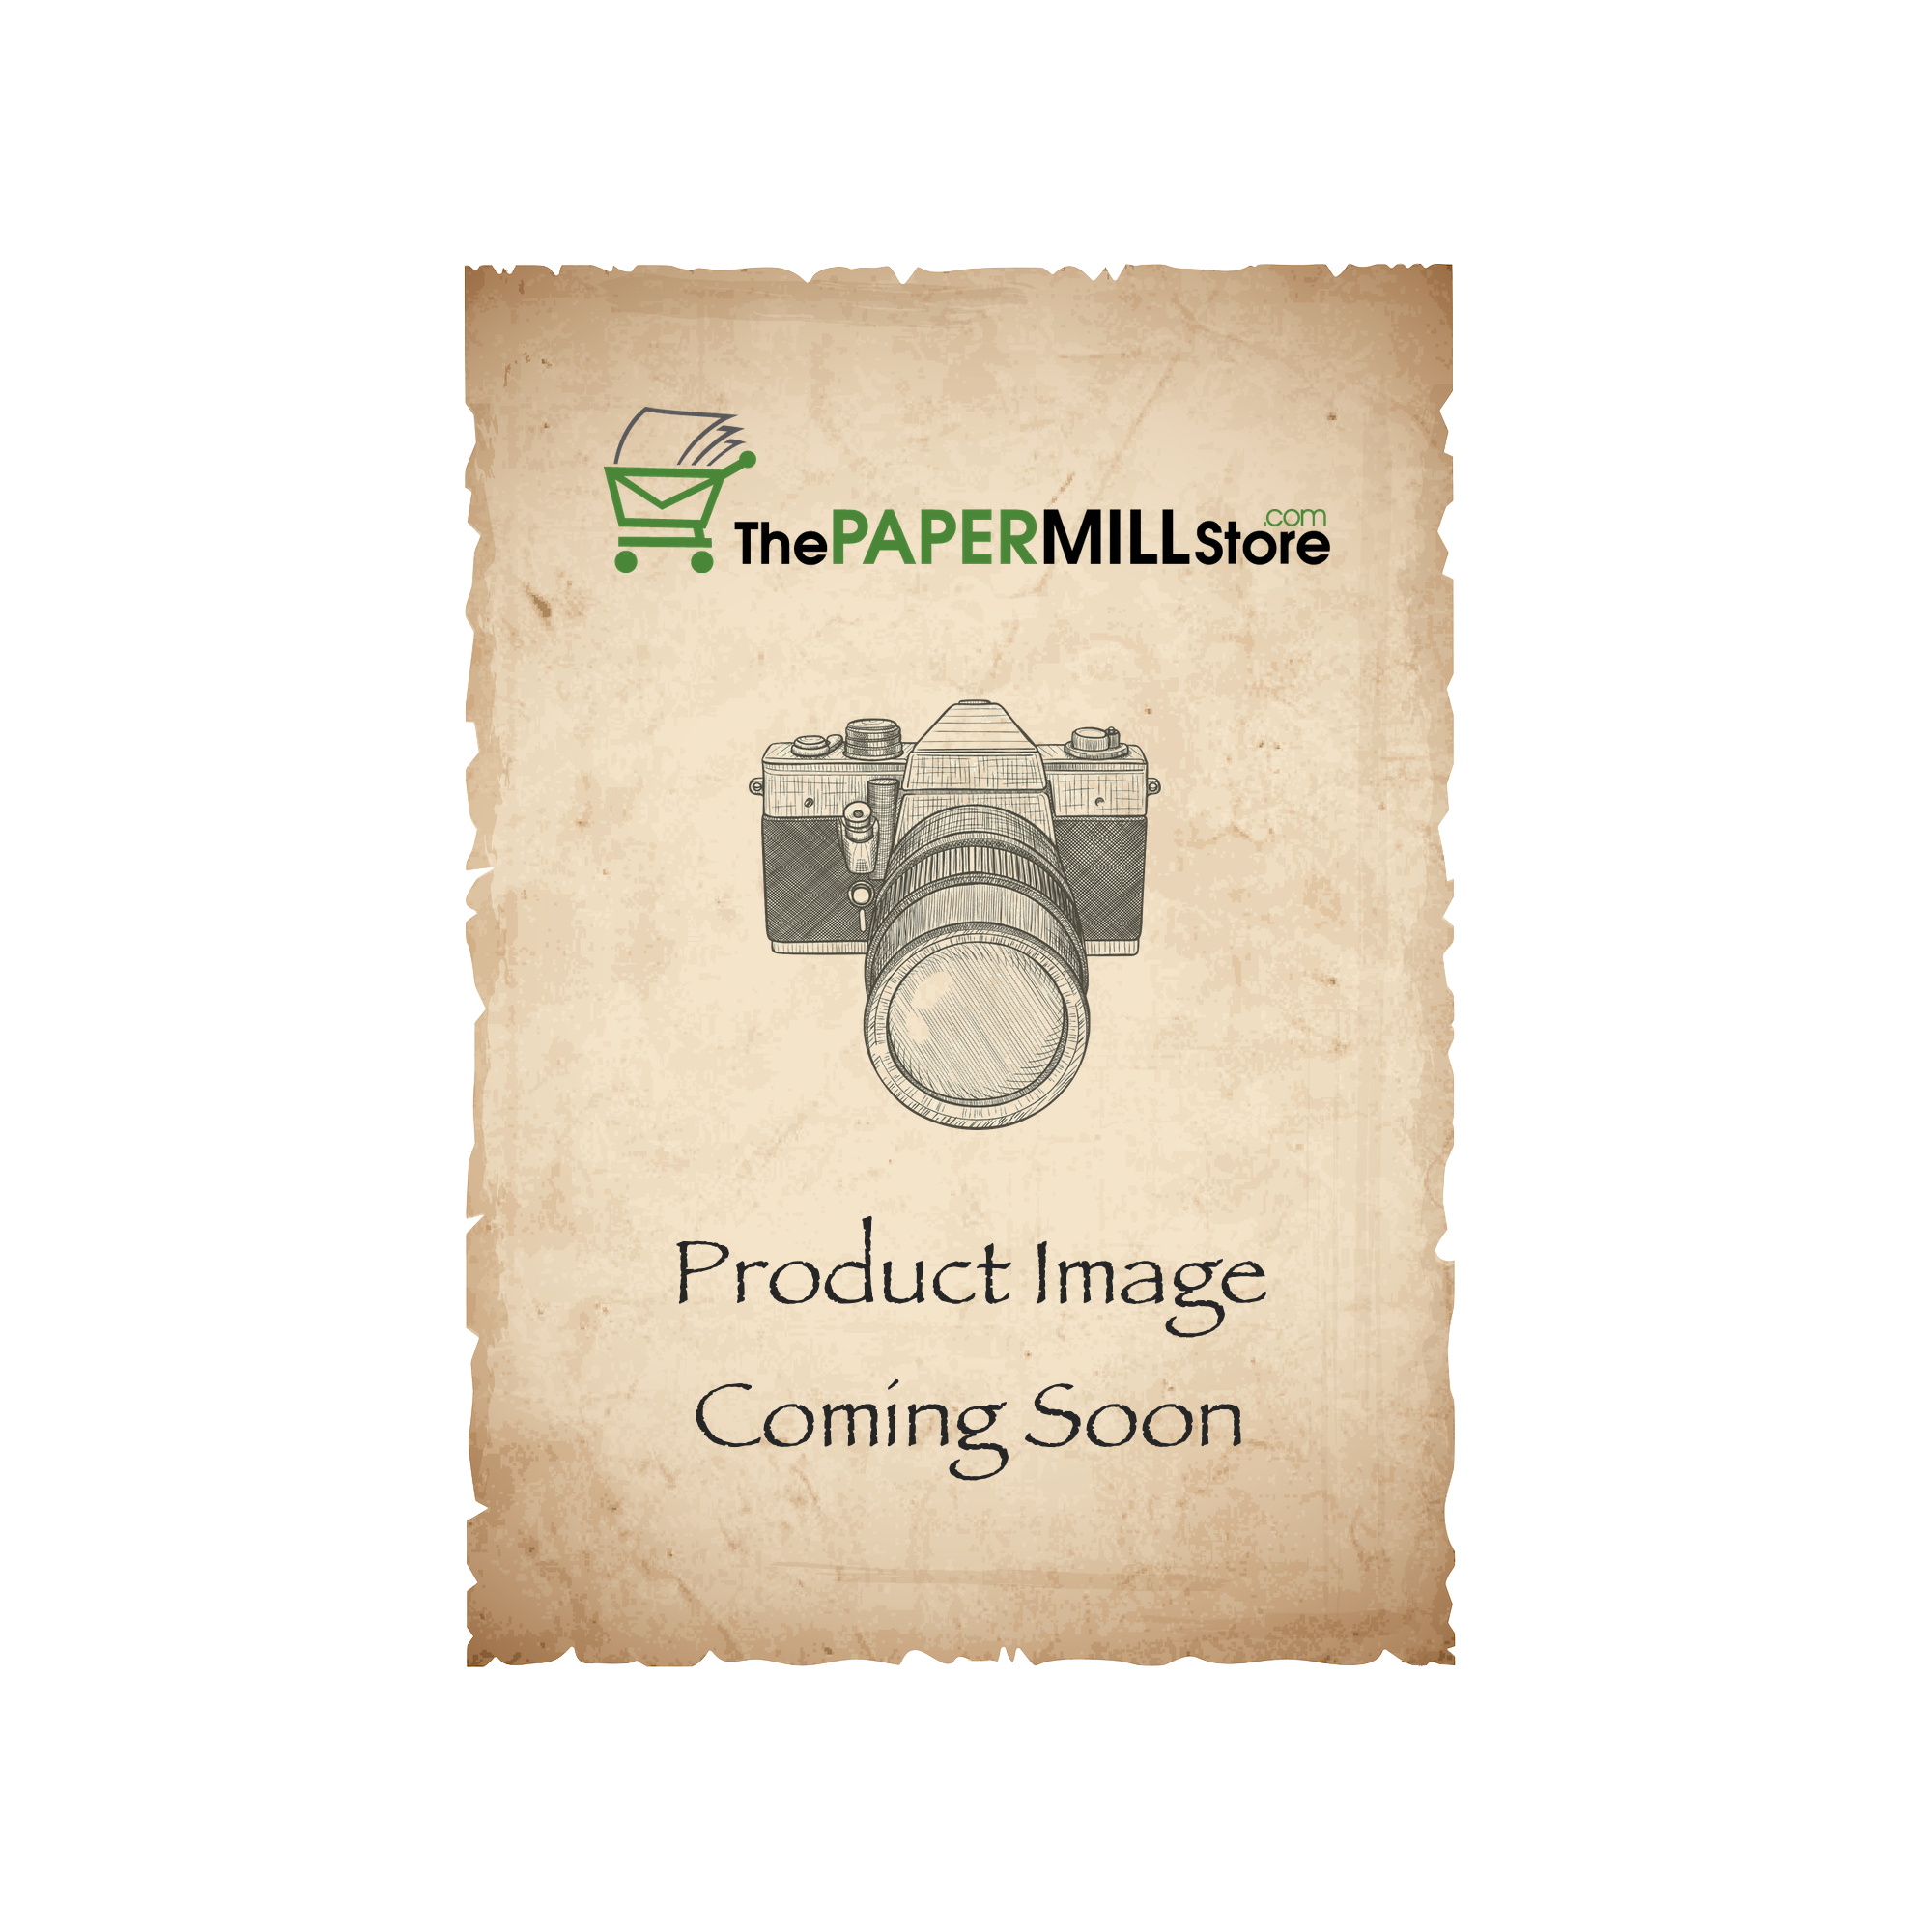 CLASSIC Laid Classic Natural White Paper - 8 1/2 x 11 in 24 lb Writing Traditional Laid Watermarked 500 per Ream